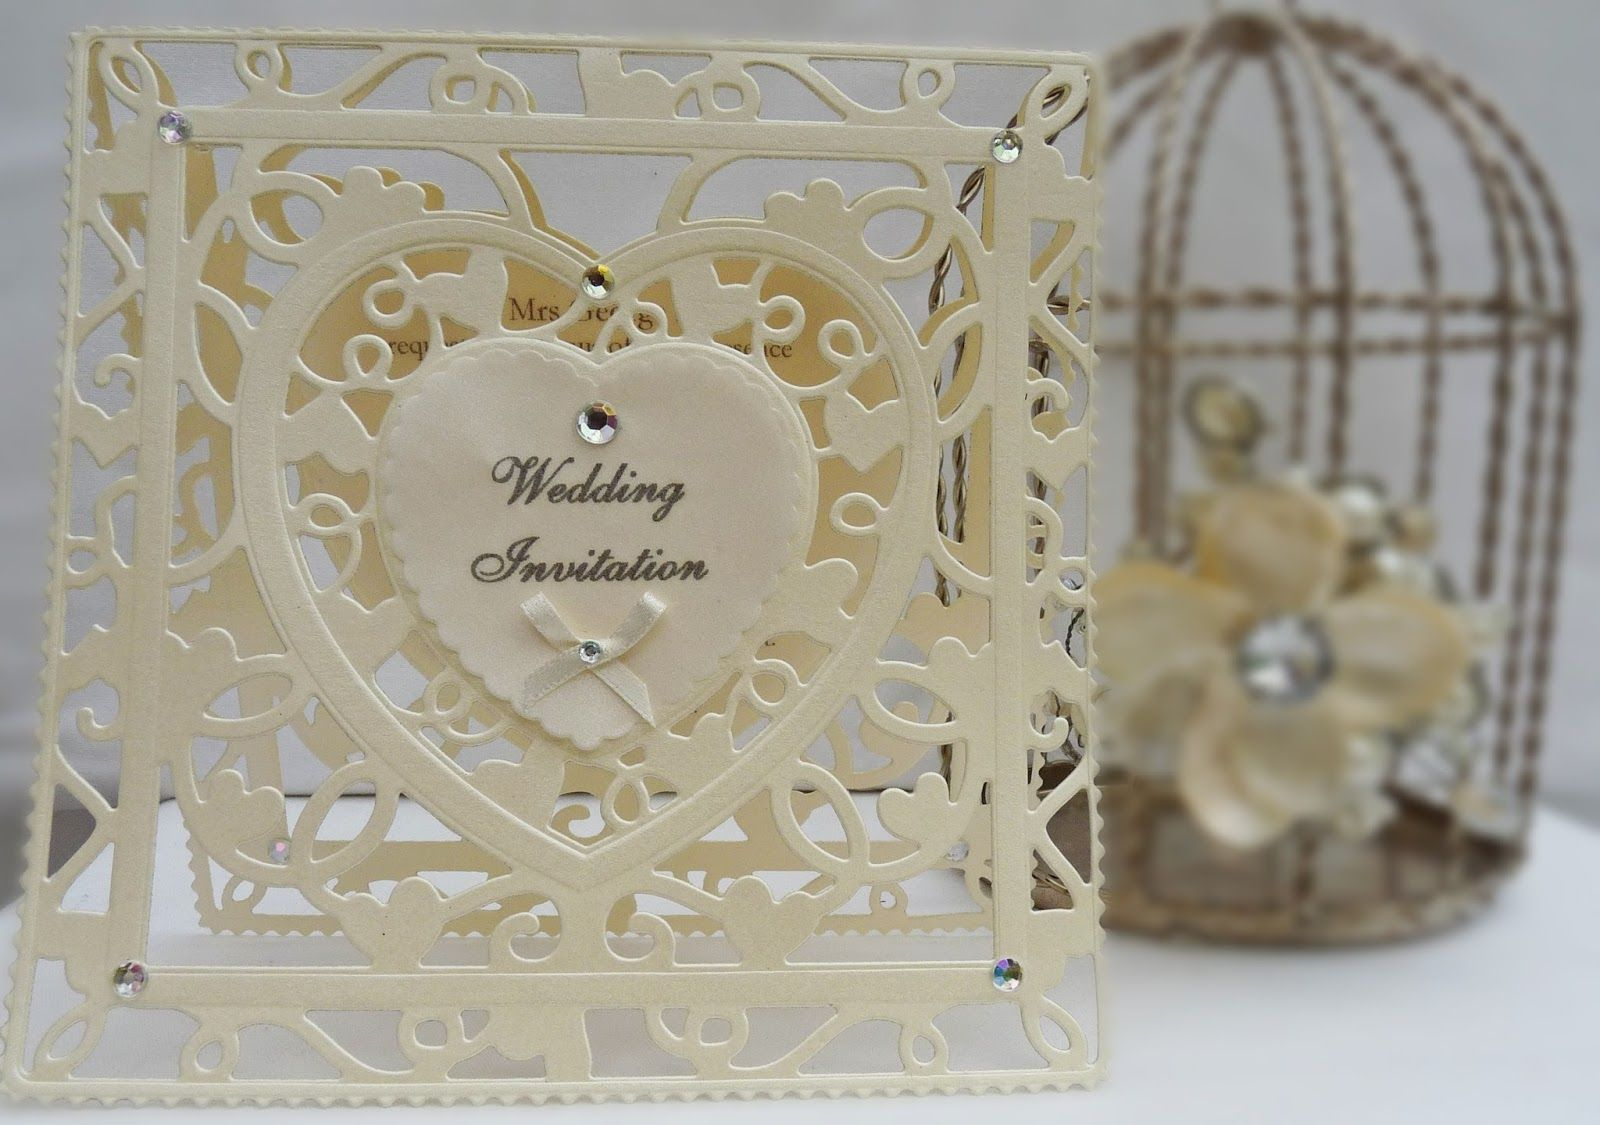 Dipsdesigns Is A Crafting Blog About Paper Crafts Sugarcraft With Step By Step Card Making Tutorials Weekly P Tonic Studio Tonic Cards Wedding Invitations